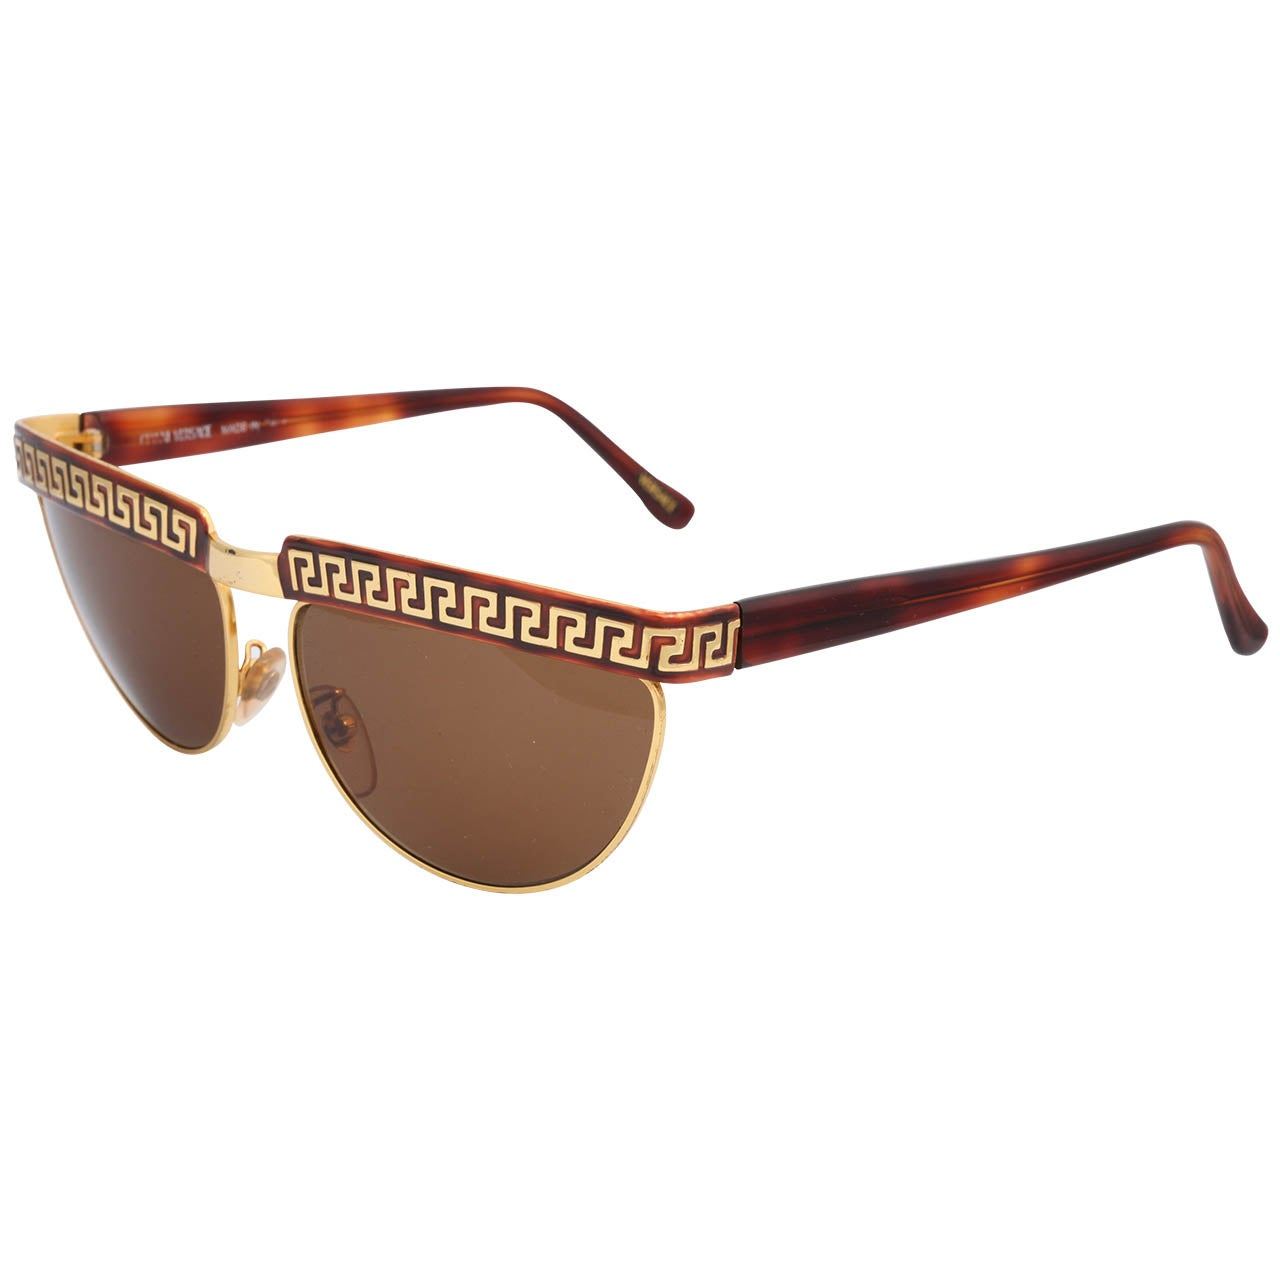 eec6ab669 GIANNI VERSACE Vintage Brown Square Sunglasses 418 54-14mm NOS.  HomeFashionAccessoriesSunglasses. Gianni Versace Vintage Sunglasses Mod S83  For Sale